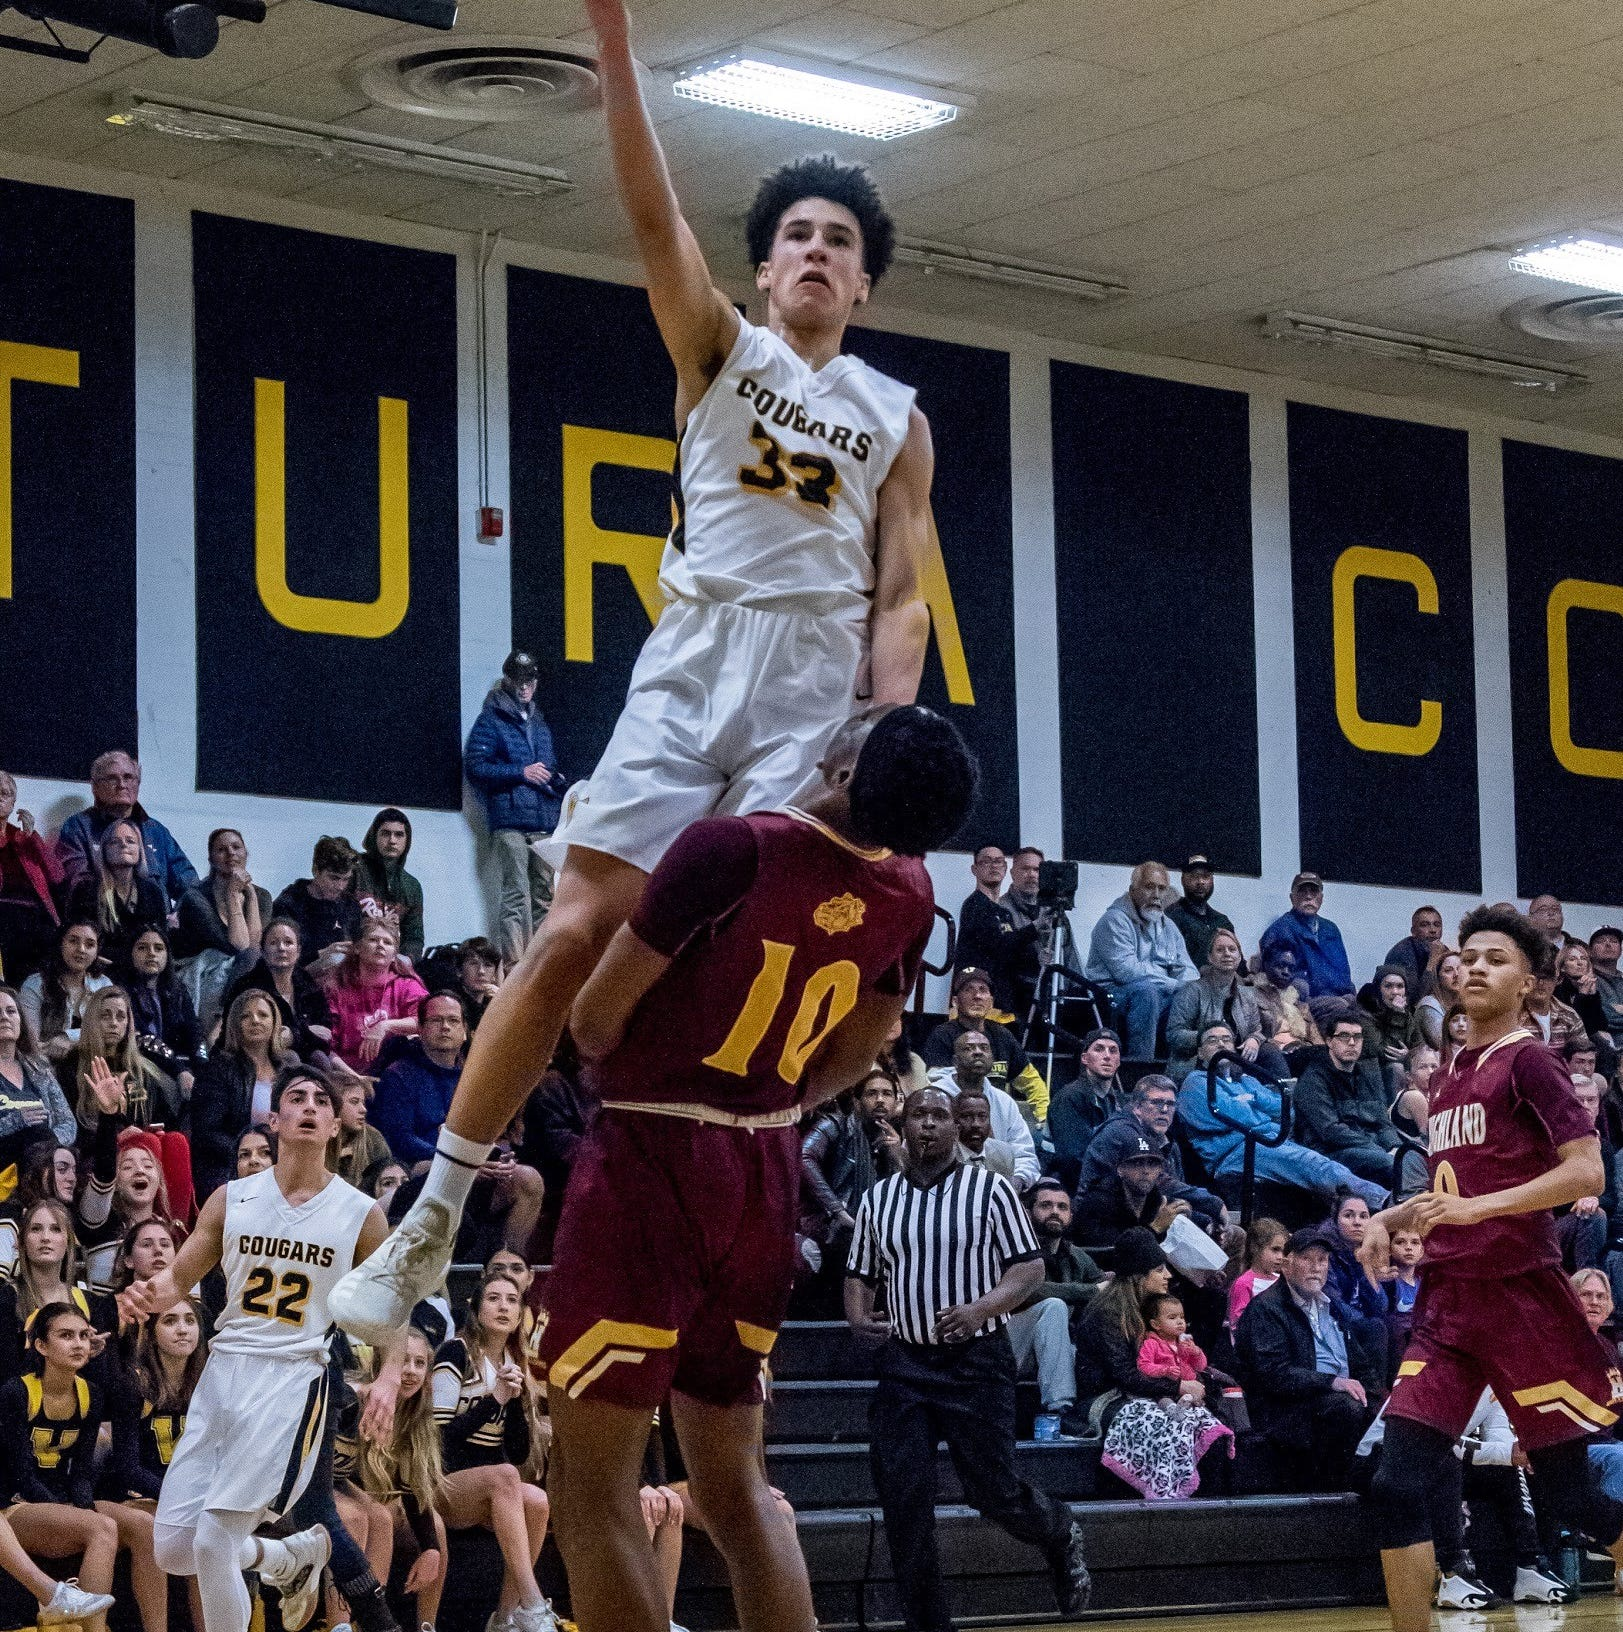 Ventura's season comes to an end in second round of Division 3AA boys basketball playoffs